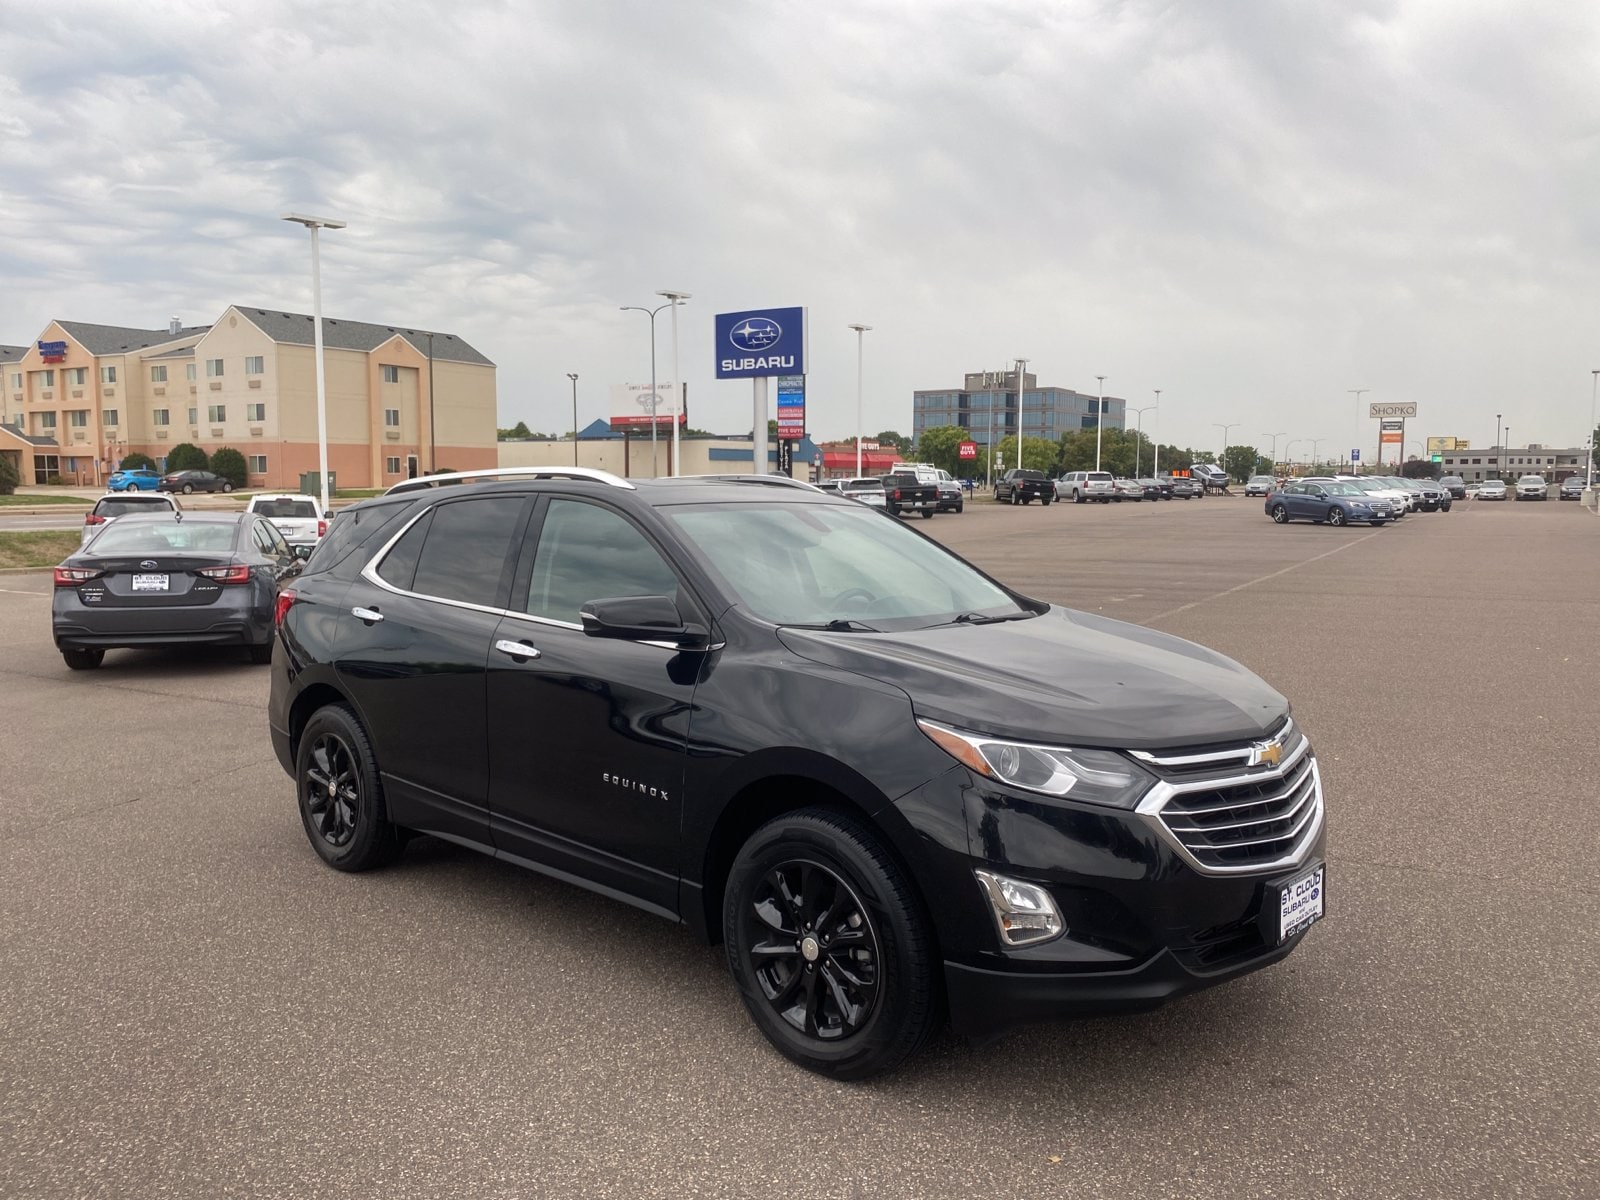 Used 2018 Chevrolet Equinox LT with VIN 3GNAXSEV7JL100589 for sale in Saint Cloud, Minnesota